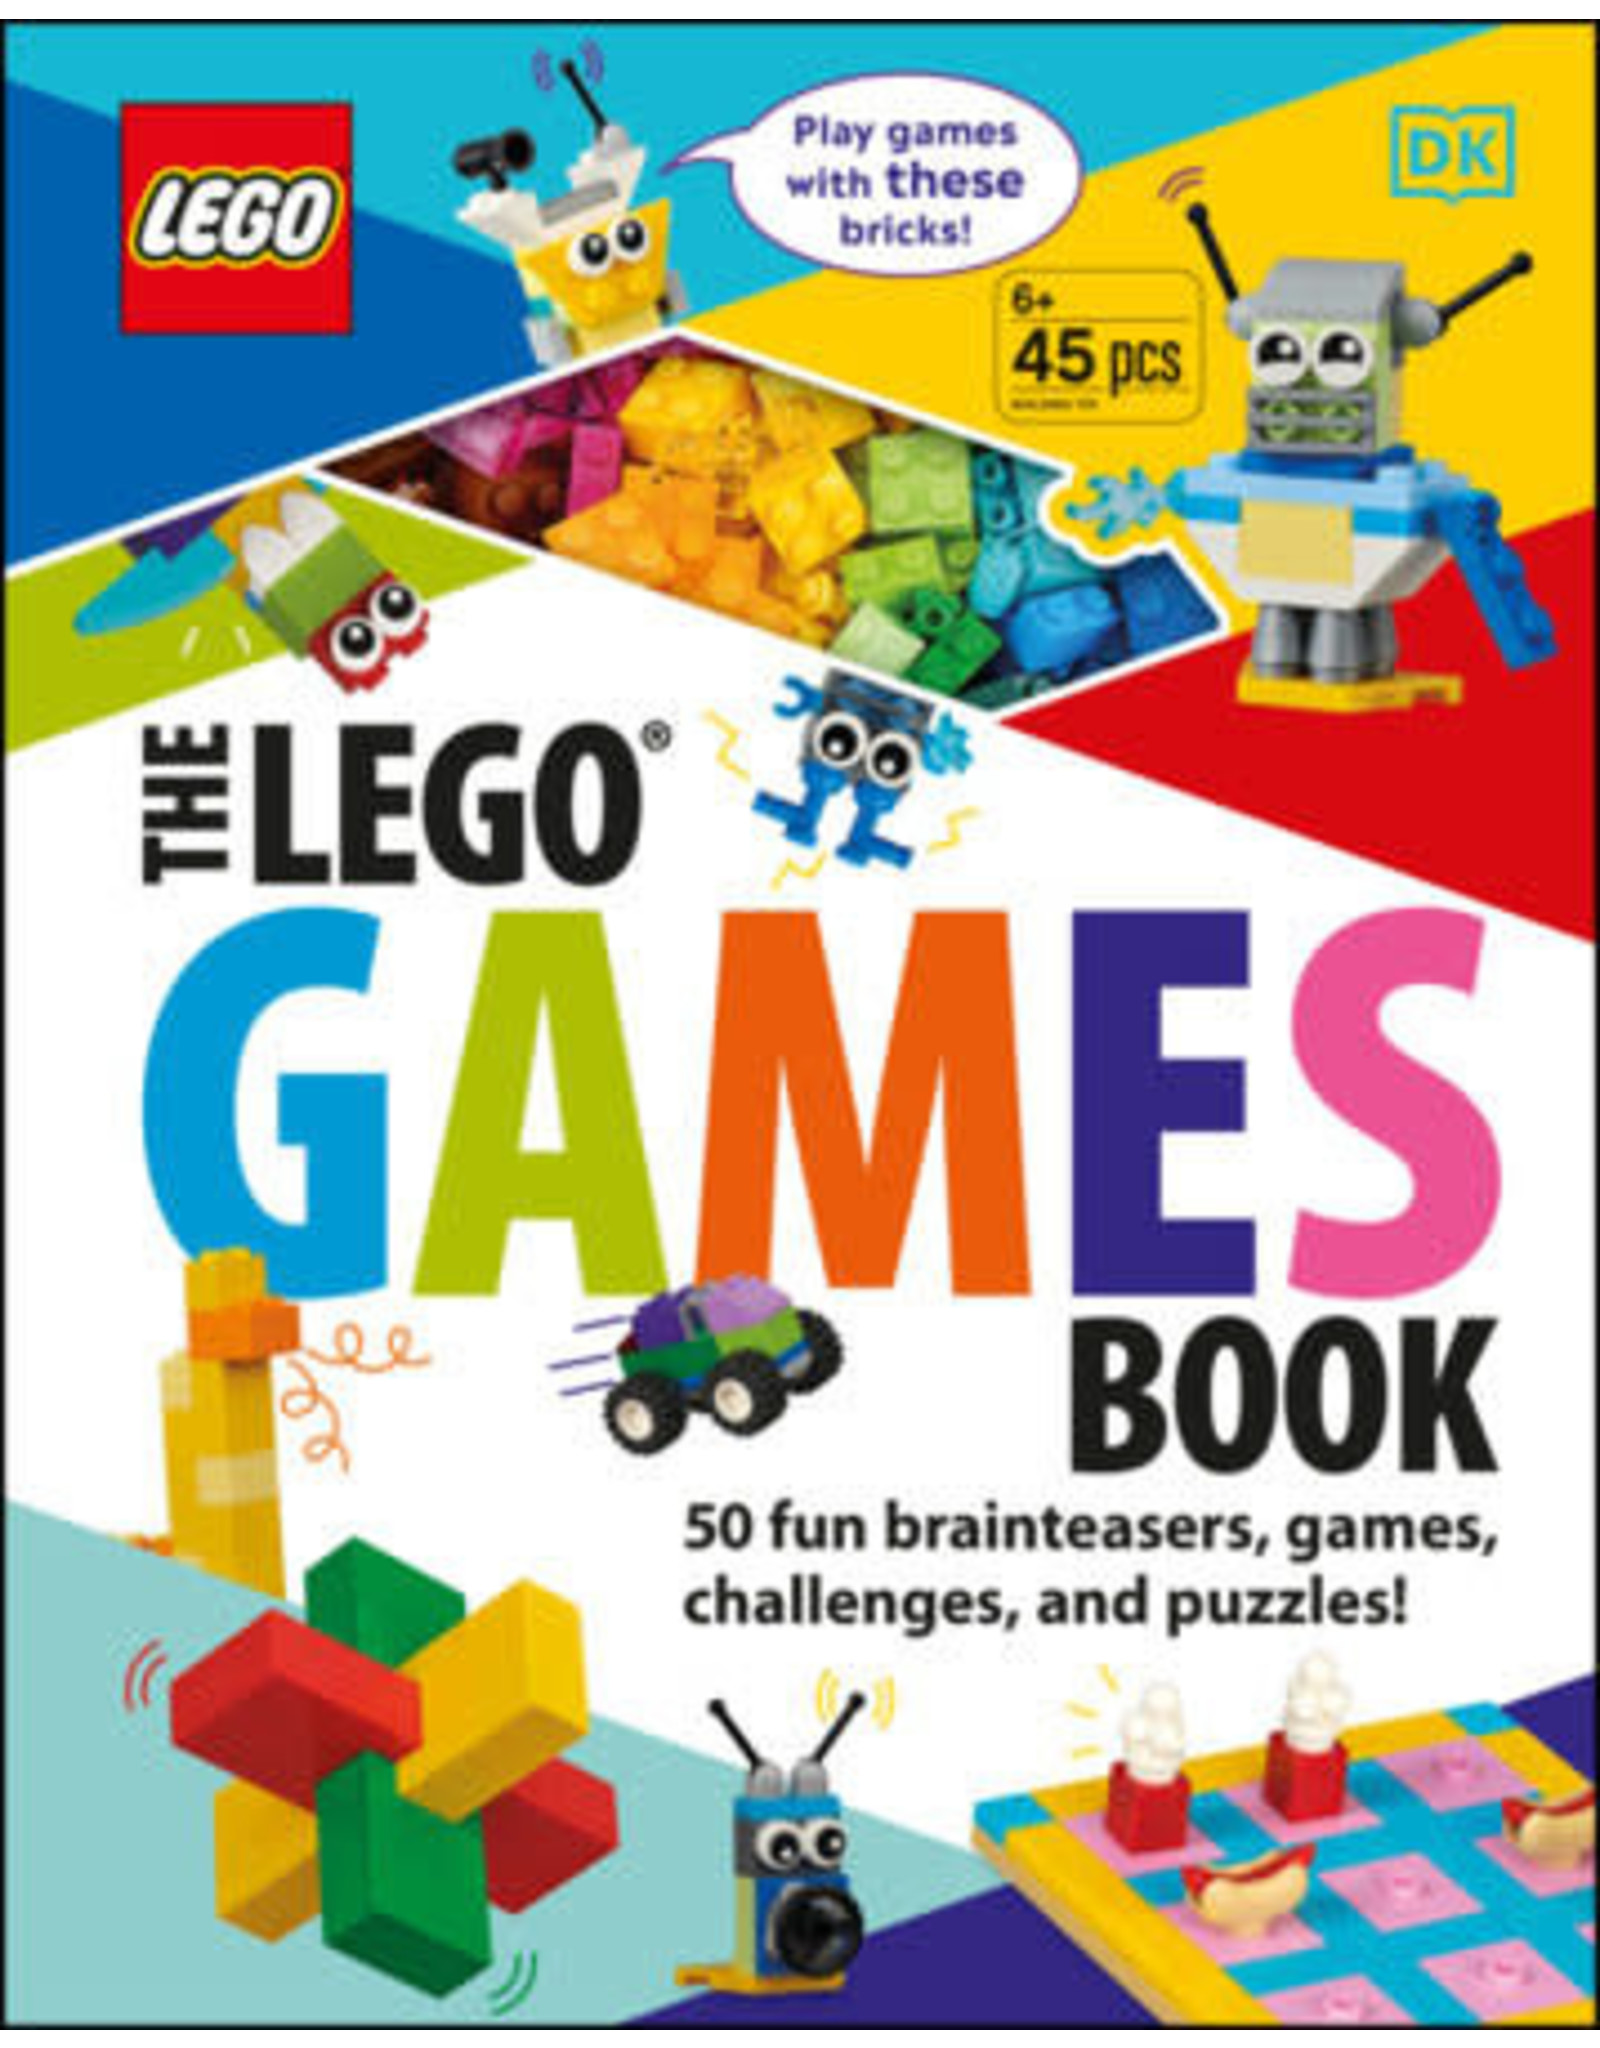 DK The LEGO Games Book